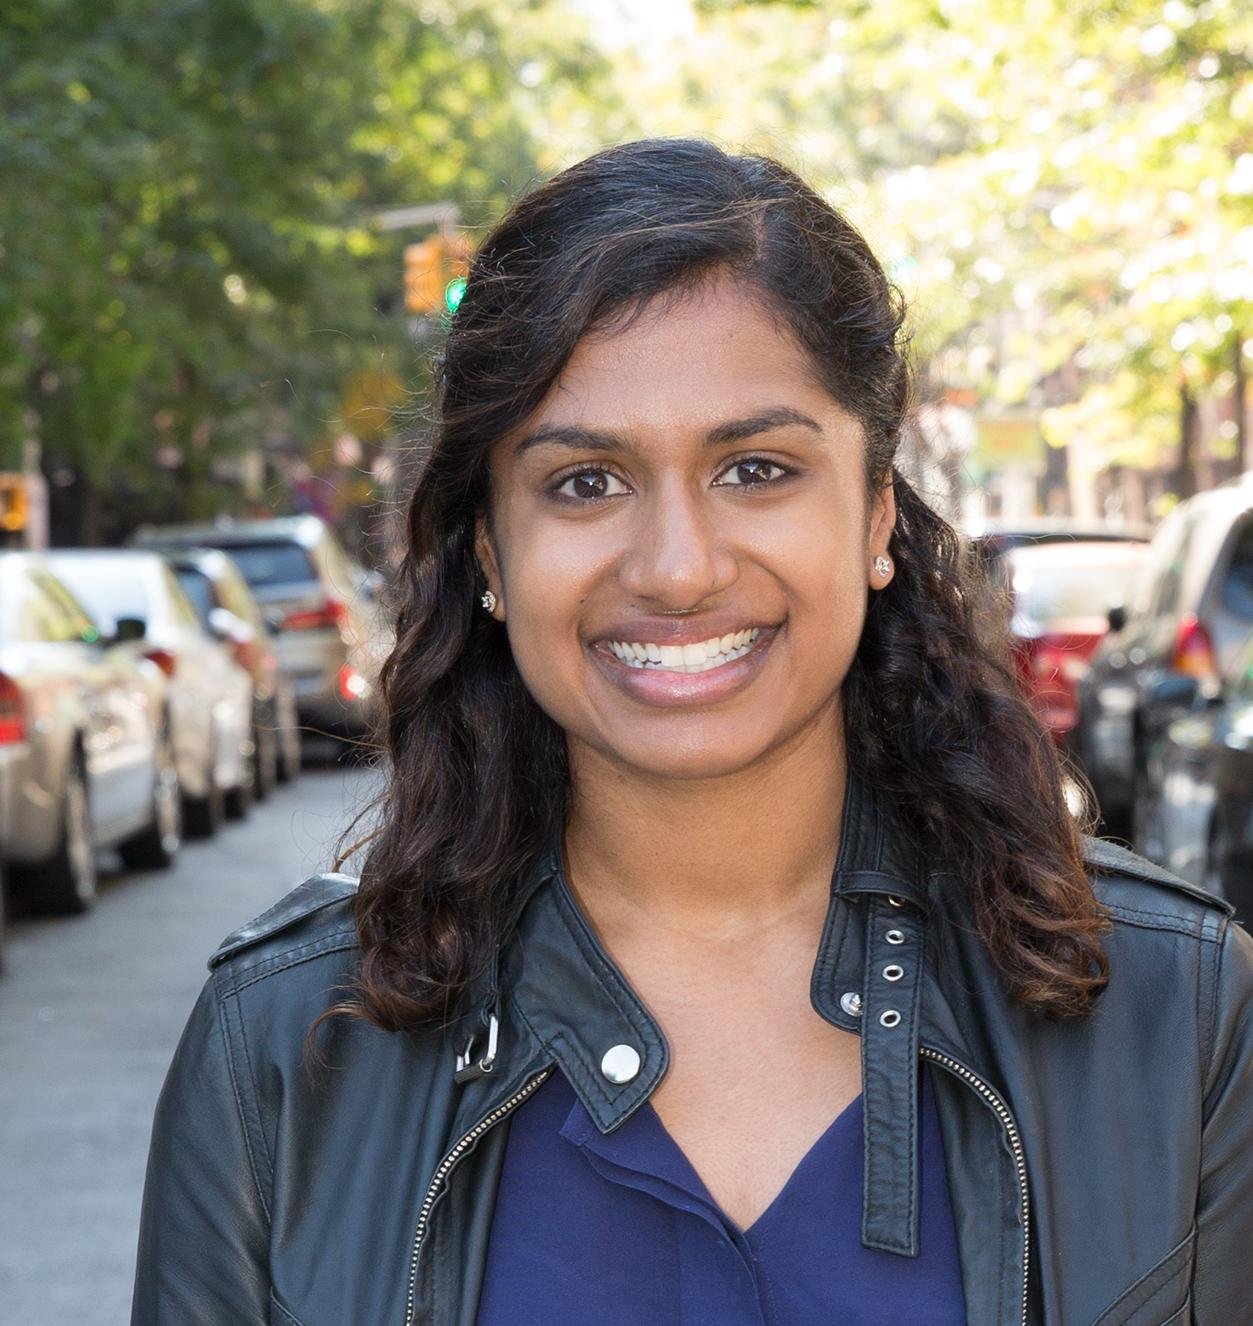 Aditi Shankar in NYC street with cars parked on both sides